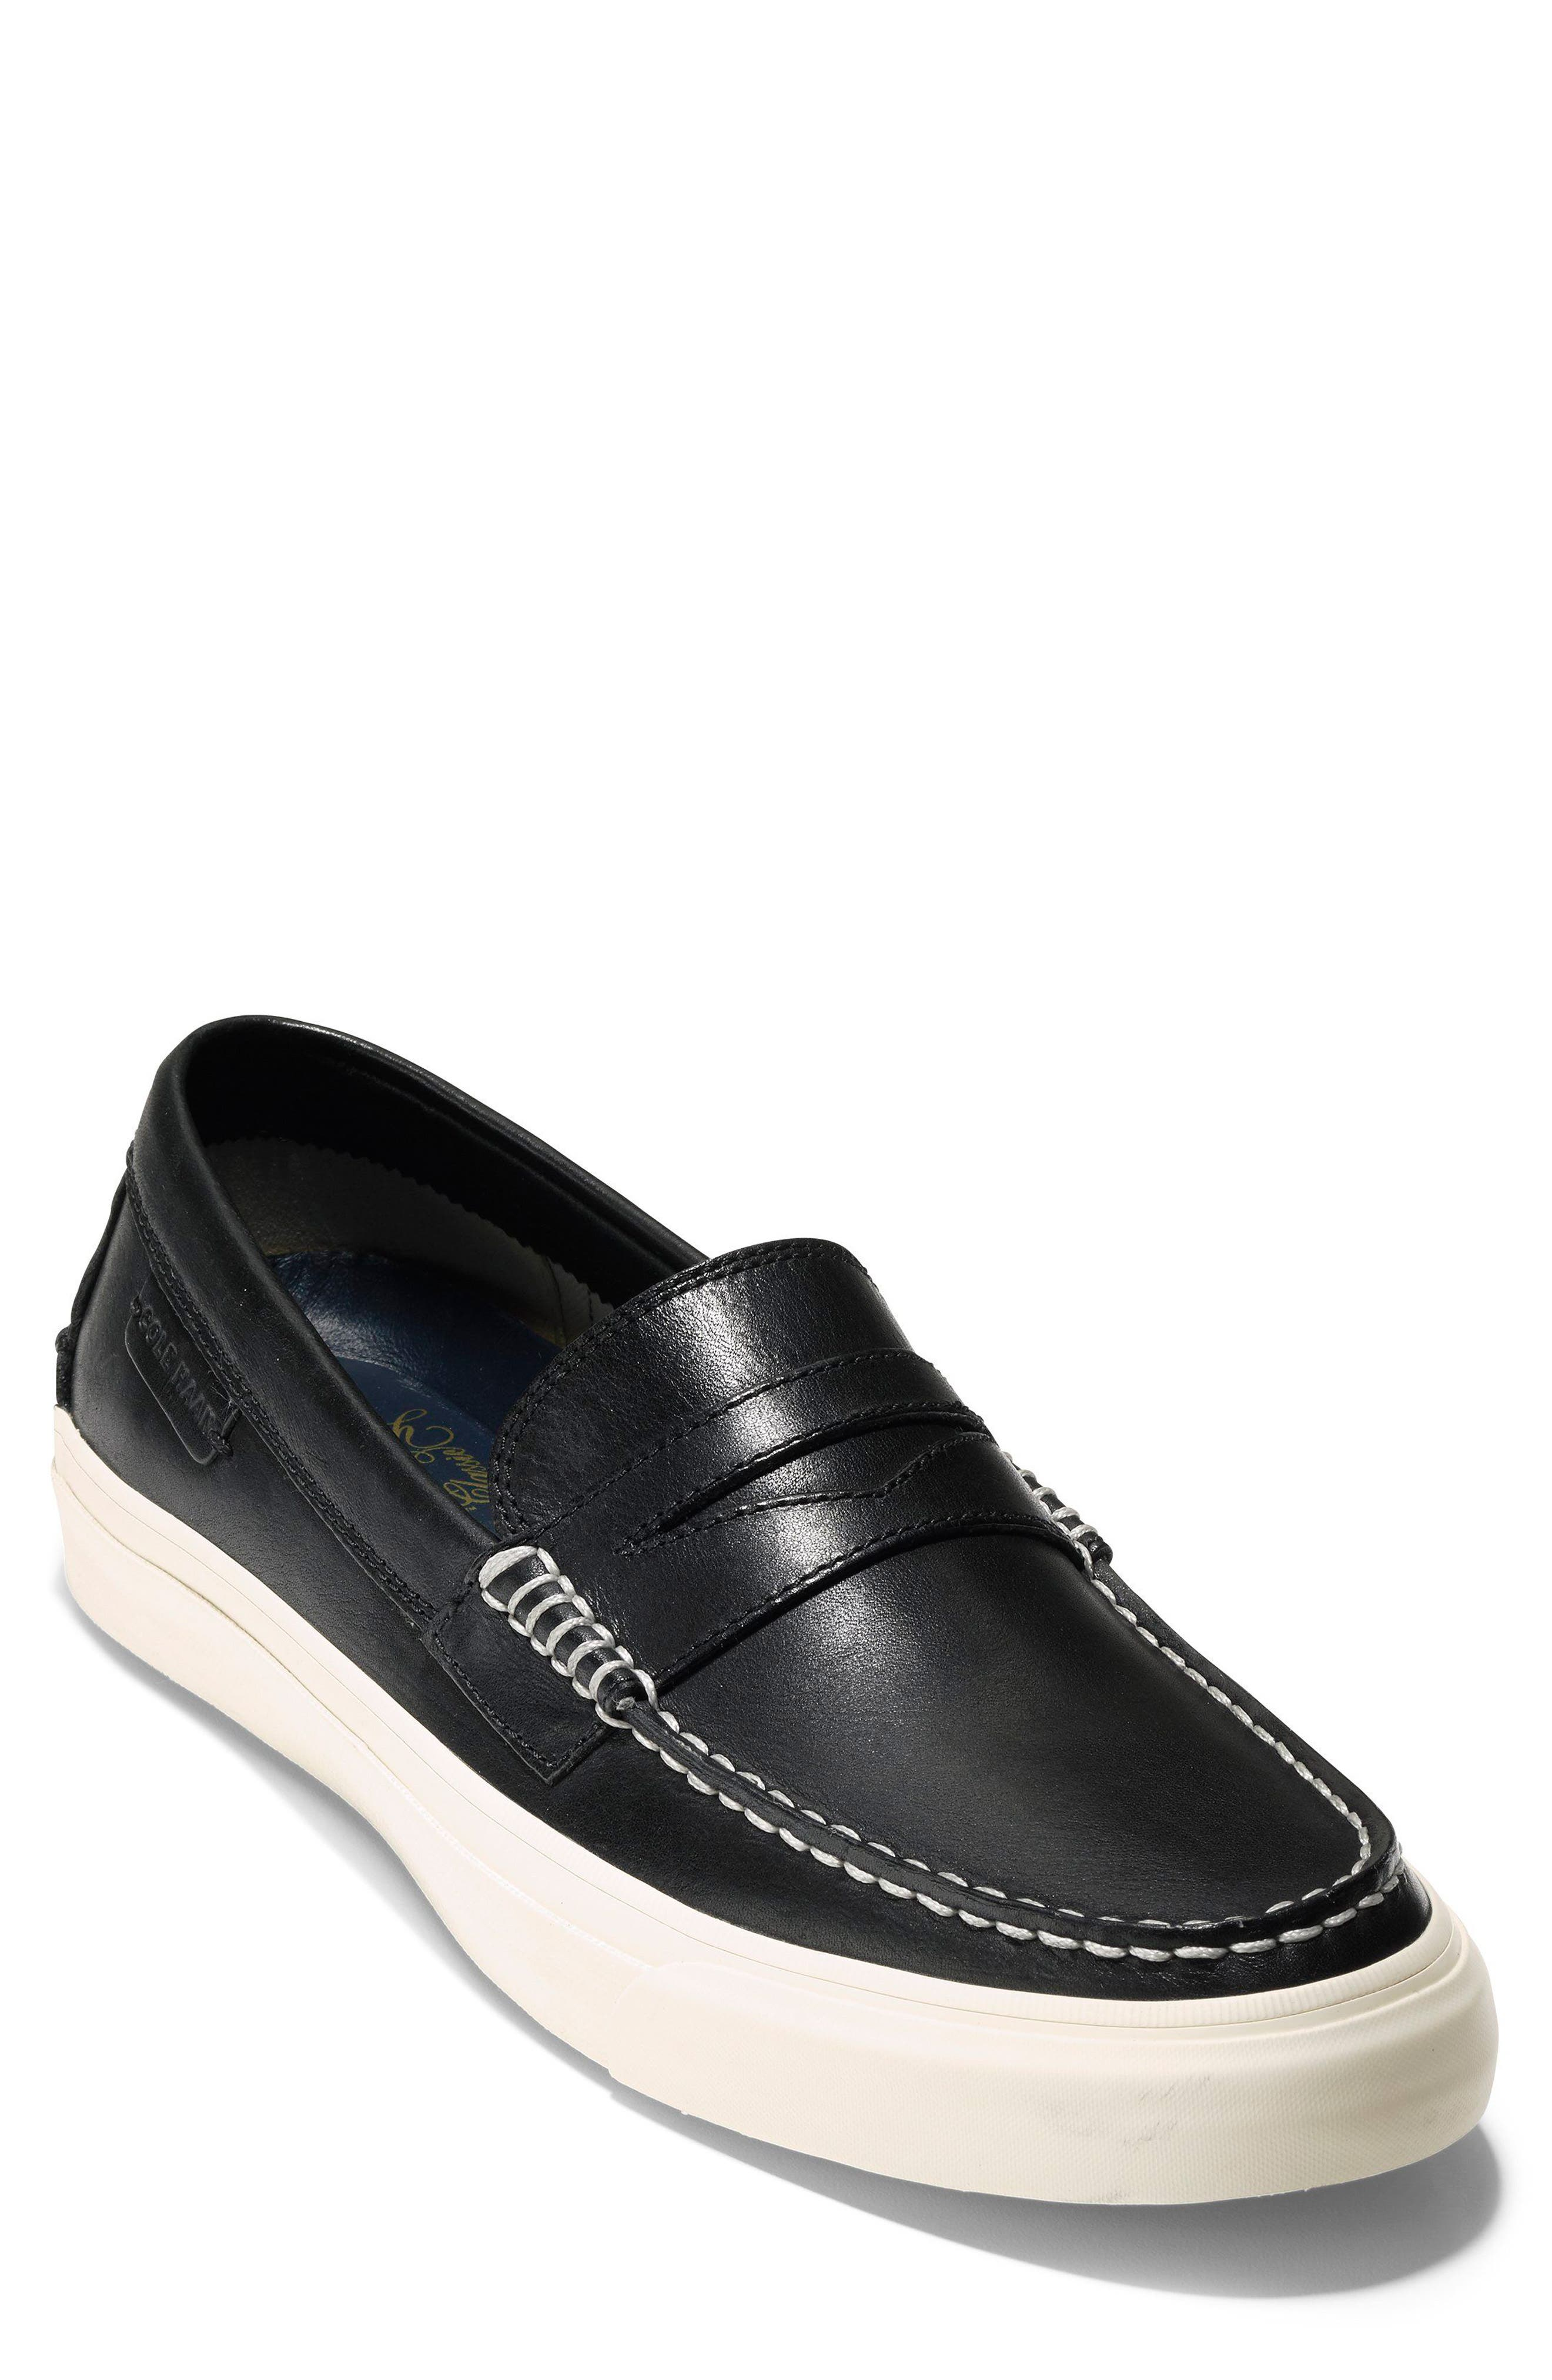 Pinch Weekend LX Penny Loafer,                         Main,                         color, Black/ White